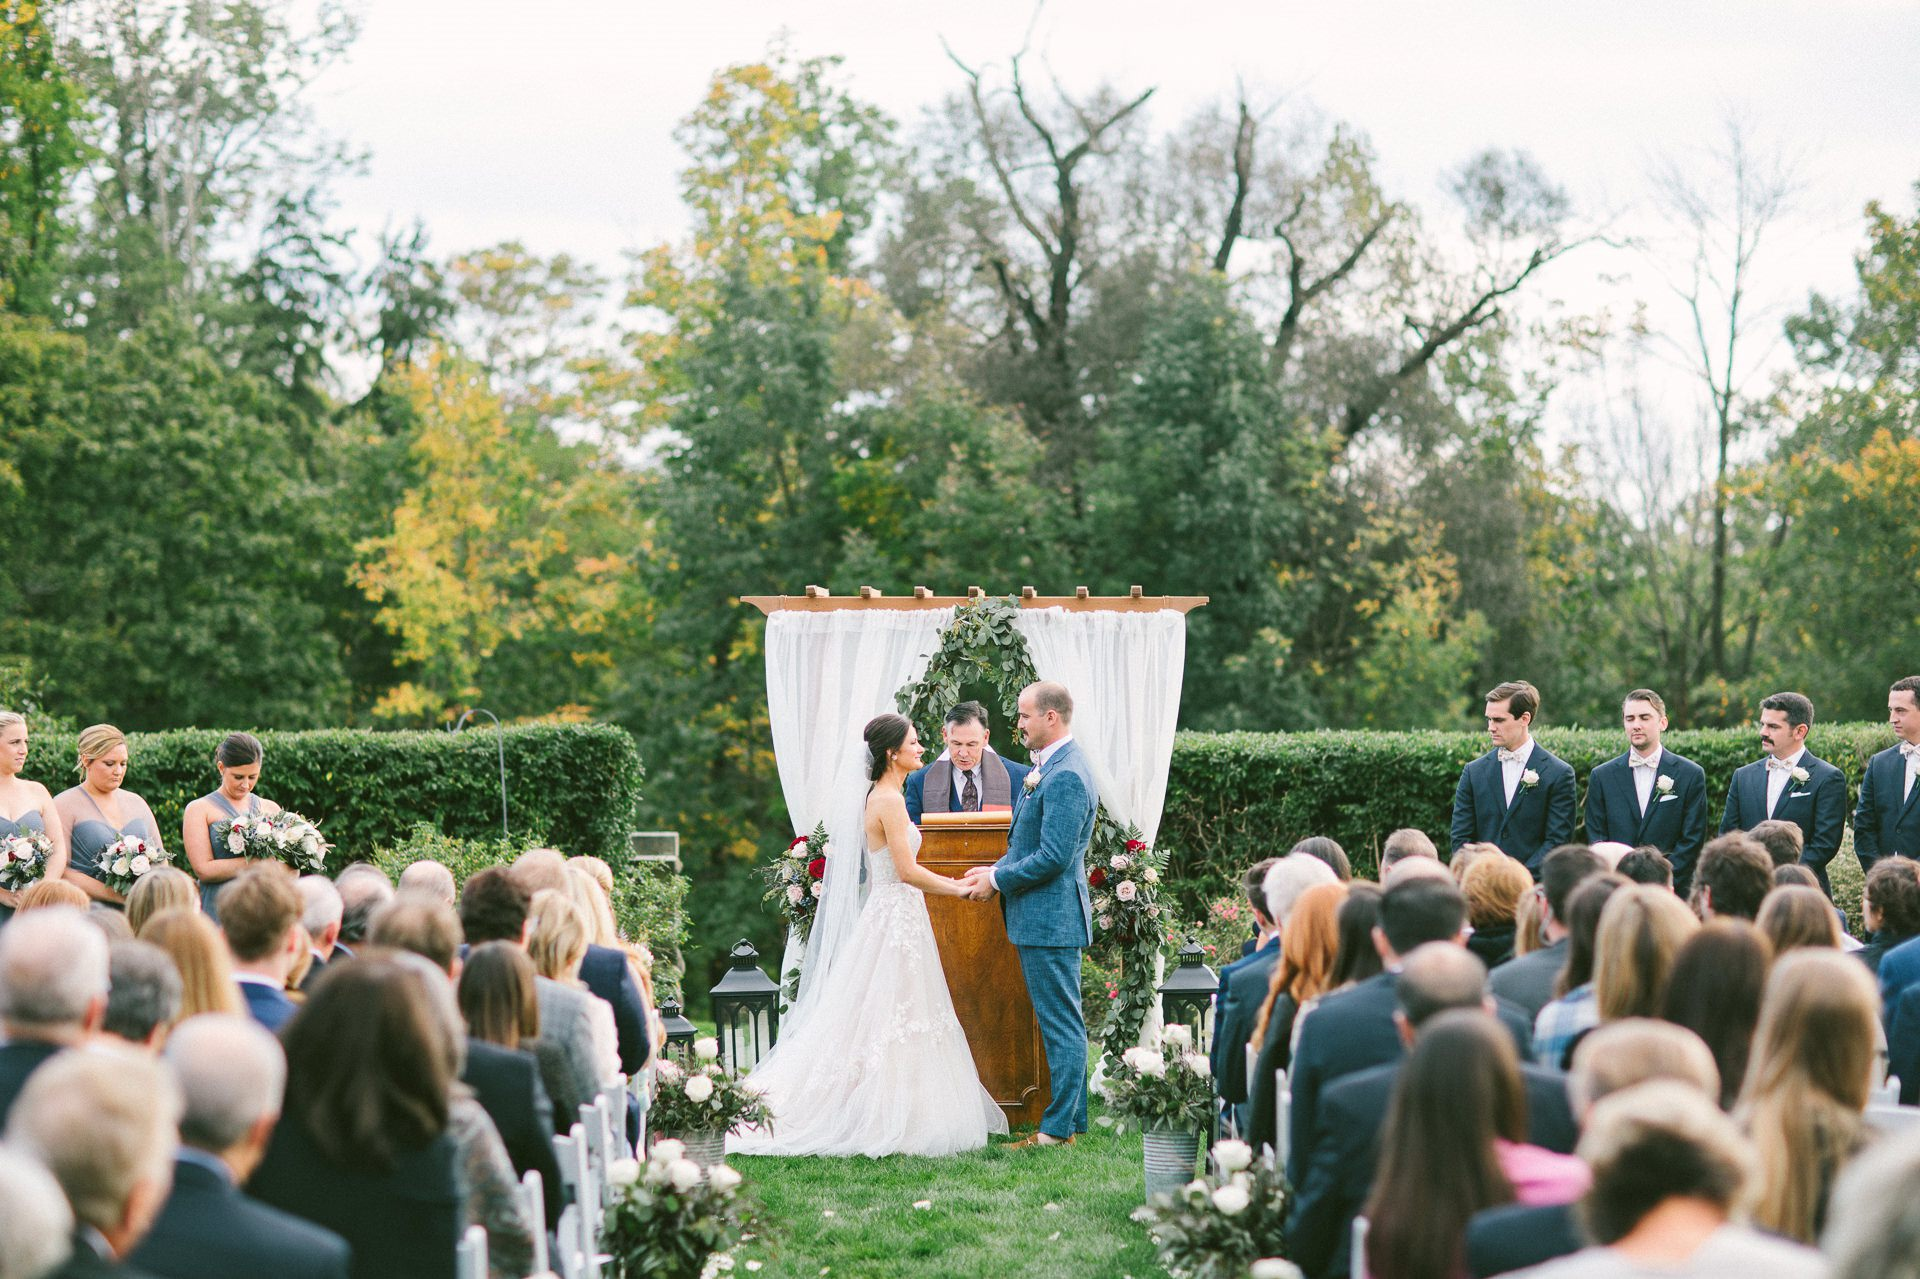 Wedding at Kirtland Country Club in Willoughby 3 5.jpg